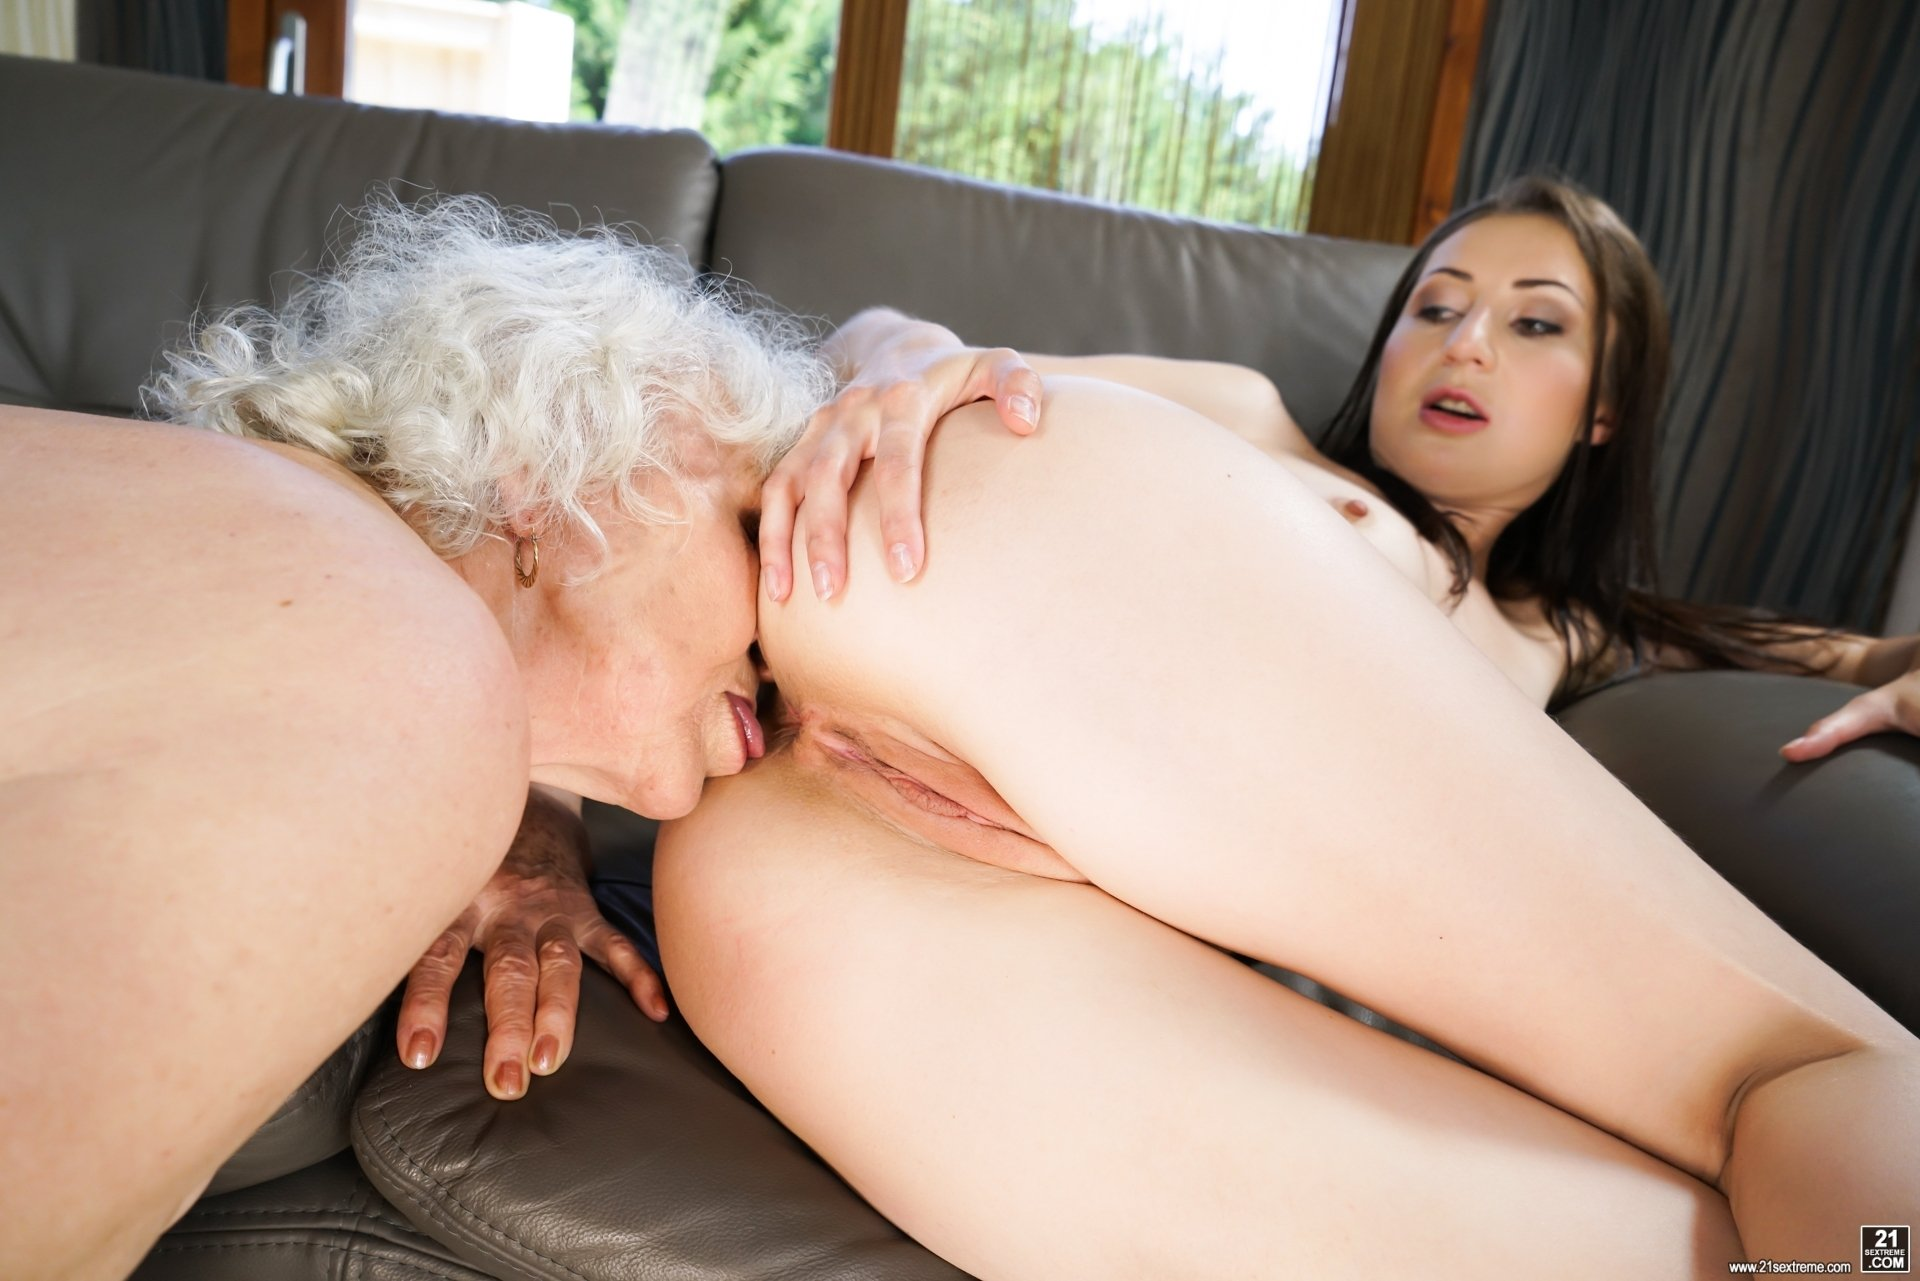 Wife abused cuckold mature granny imagefap